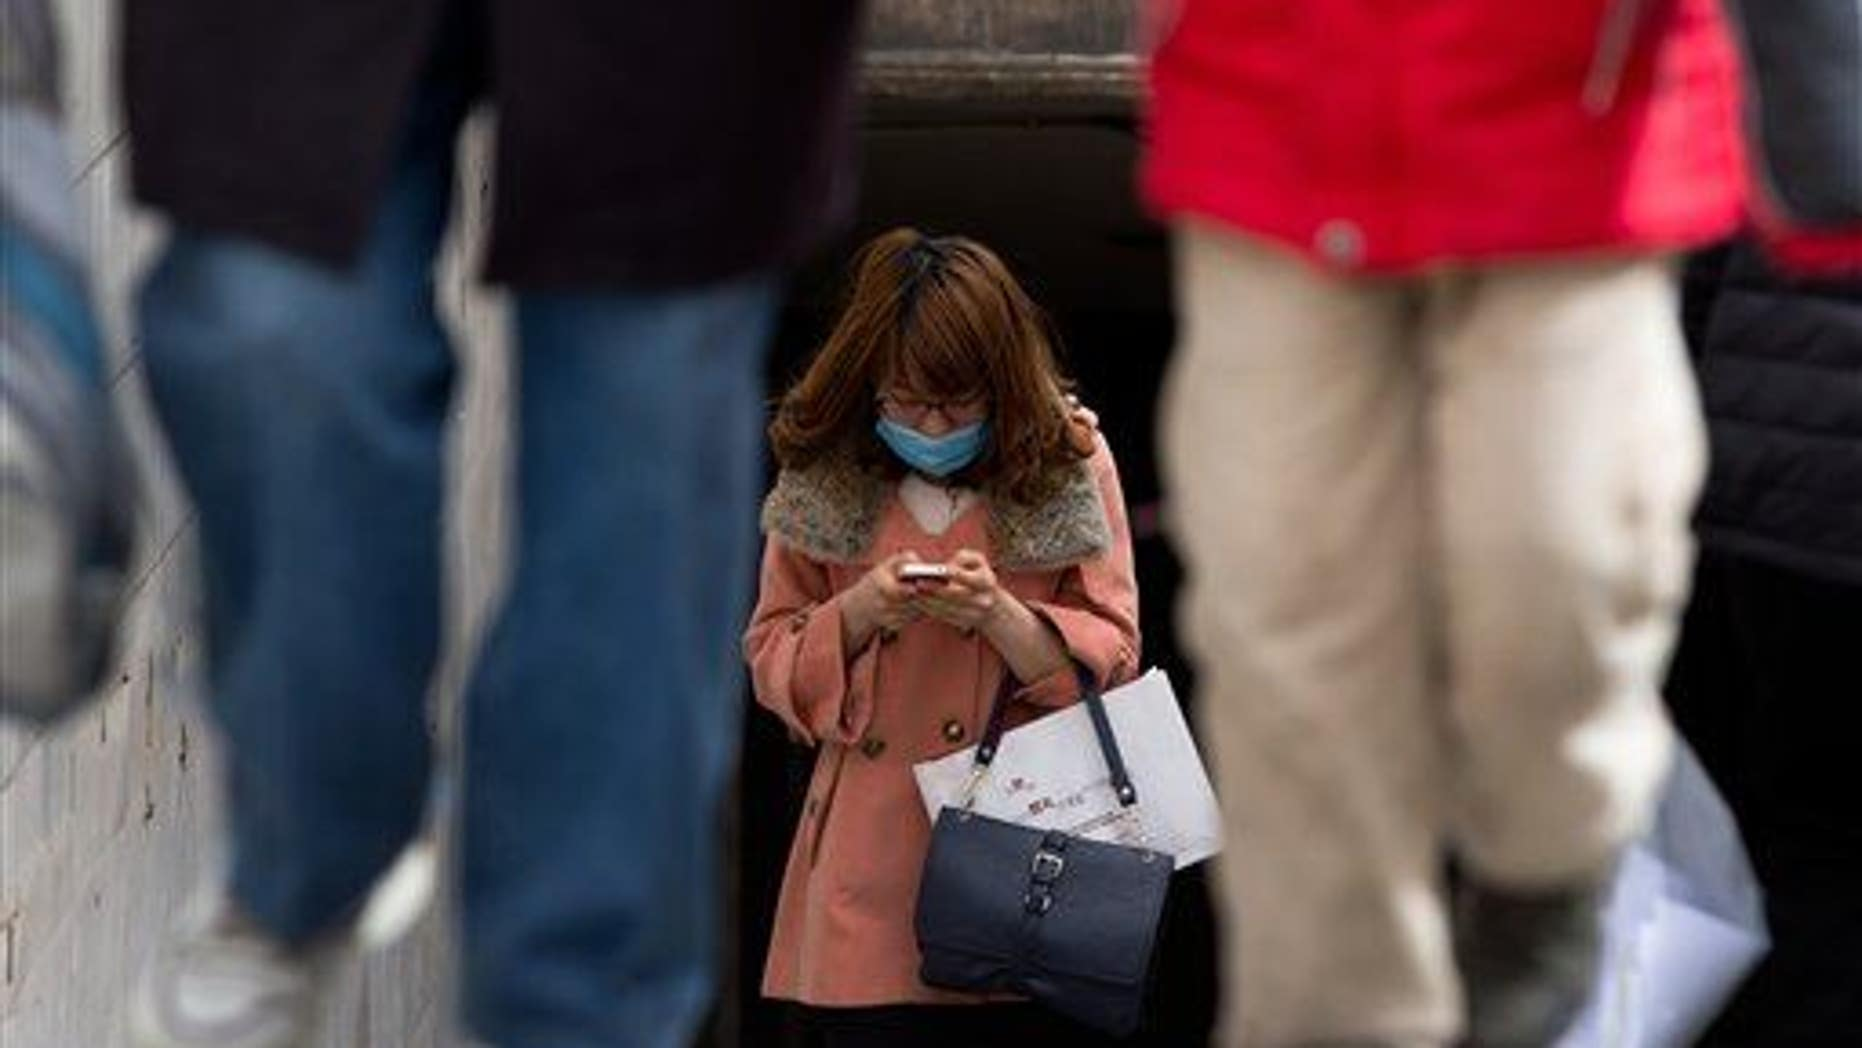 A Chinese woman wears a face mask checking her smartphone in Beijing.